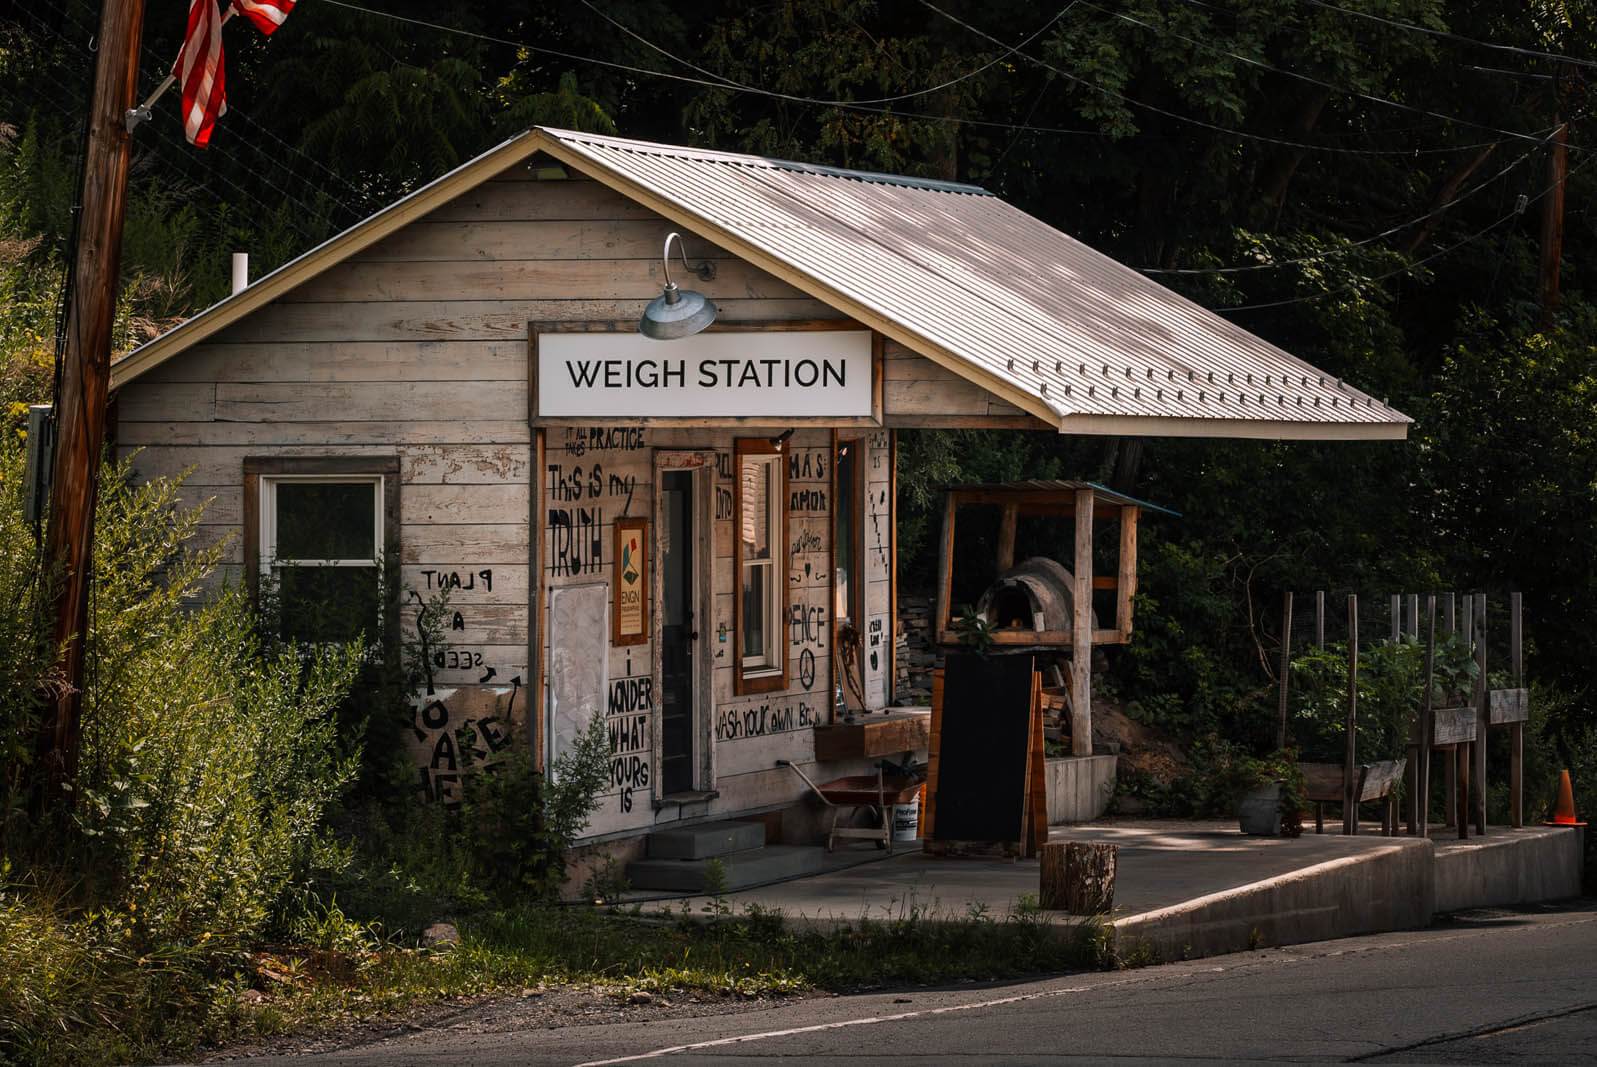 weigh station in Callicoon New York in the catskills